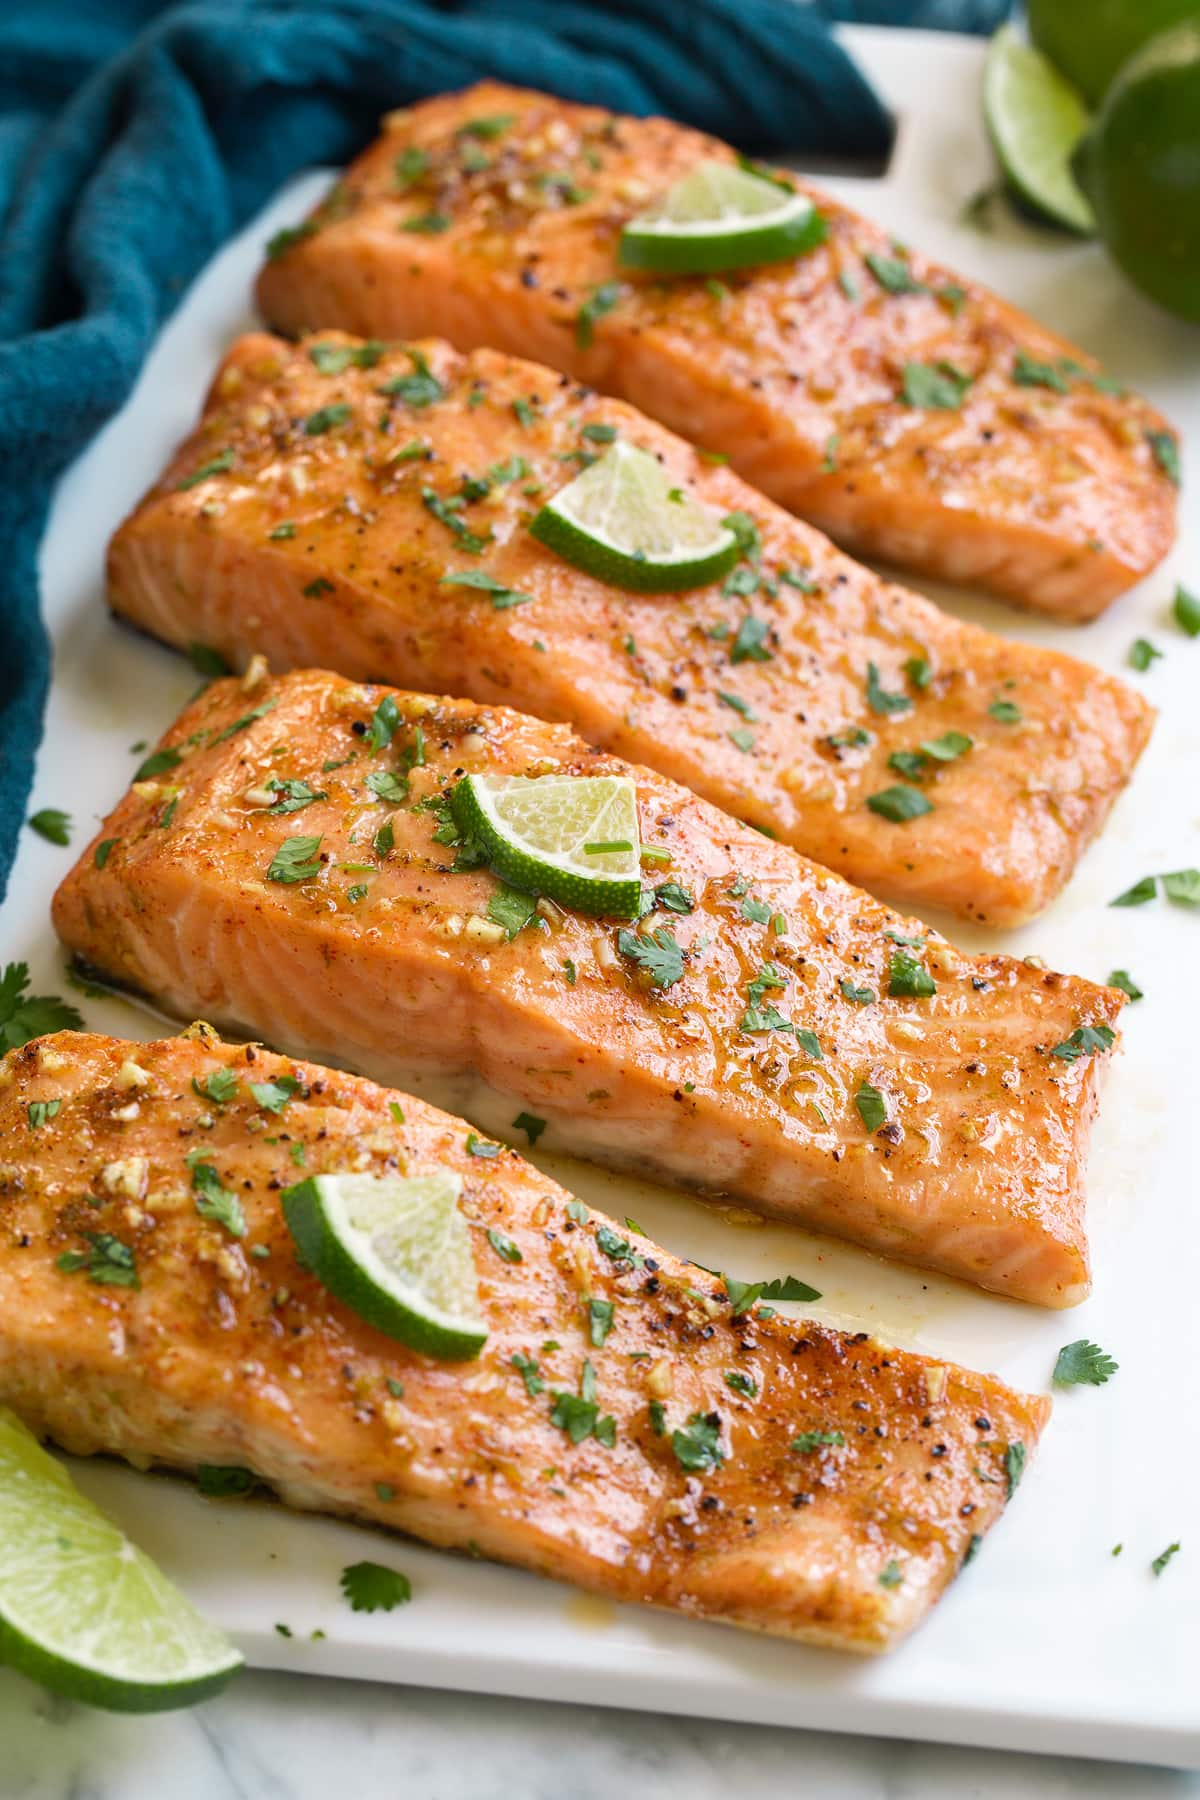 Baked salmon on a white serving platter. It's topped with a brown sugar and lime sauce and garnished with limes and cilantro.